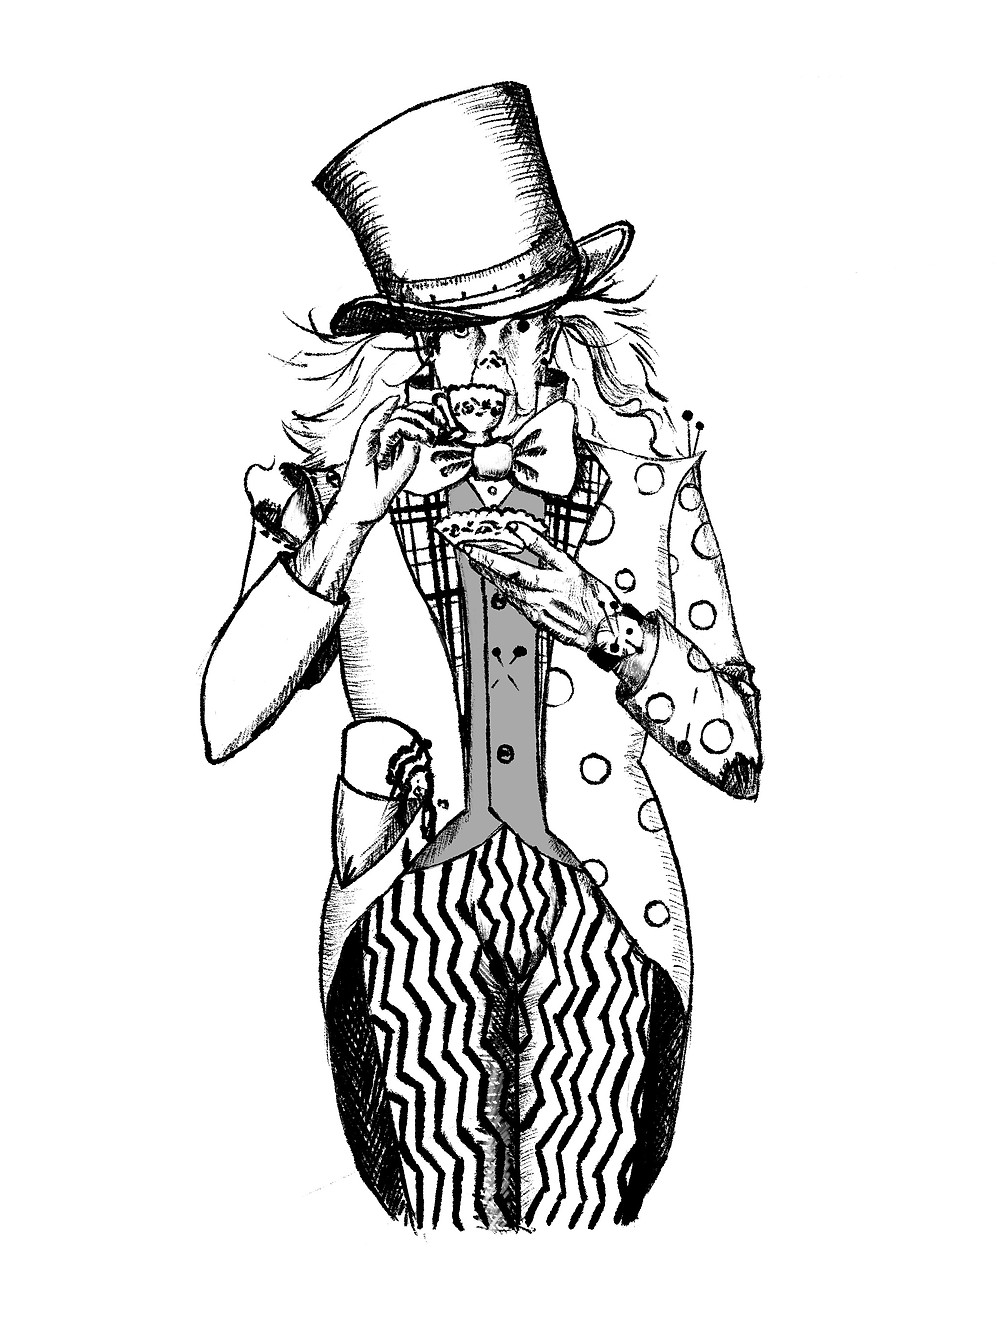 Drawing of The Mad Hatter for the book Momenticon by Andrew Caldecott